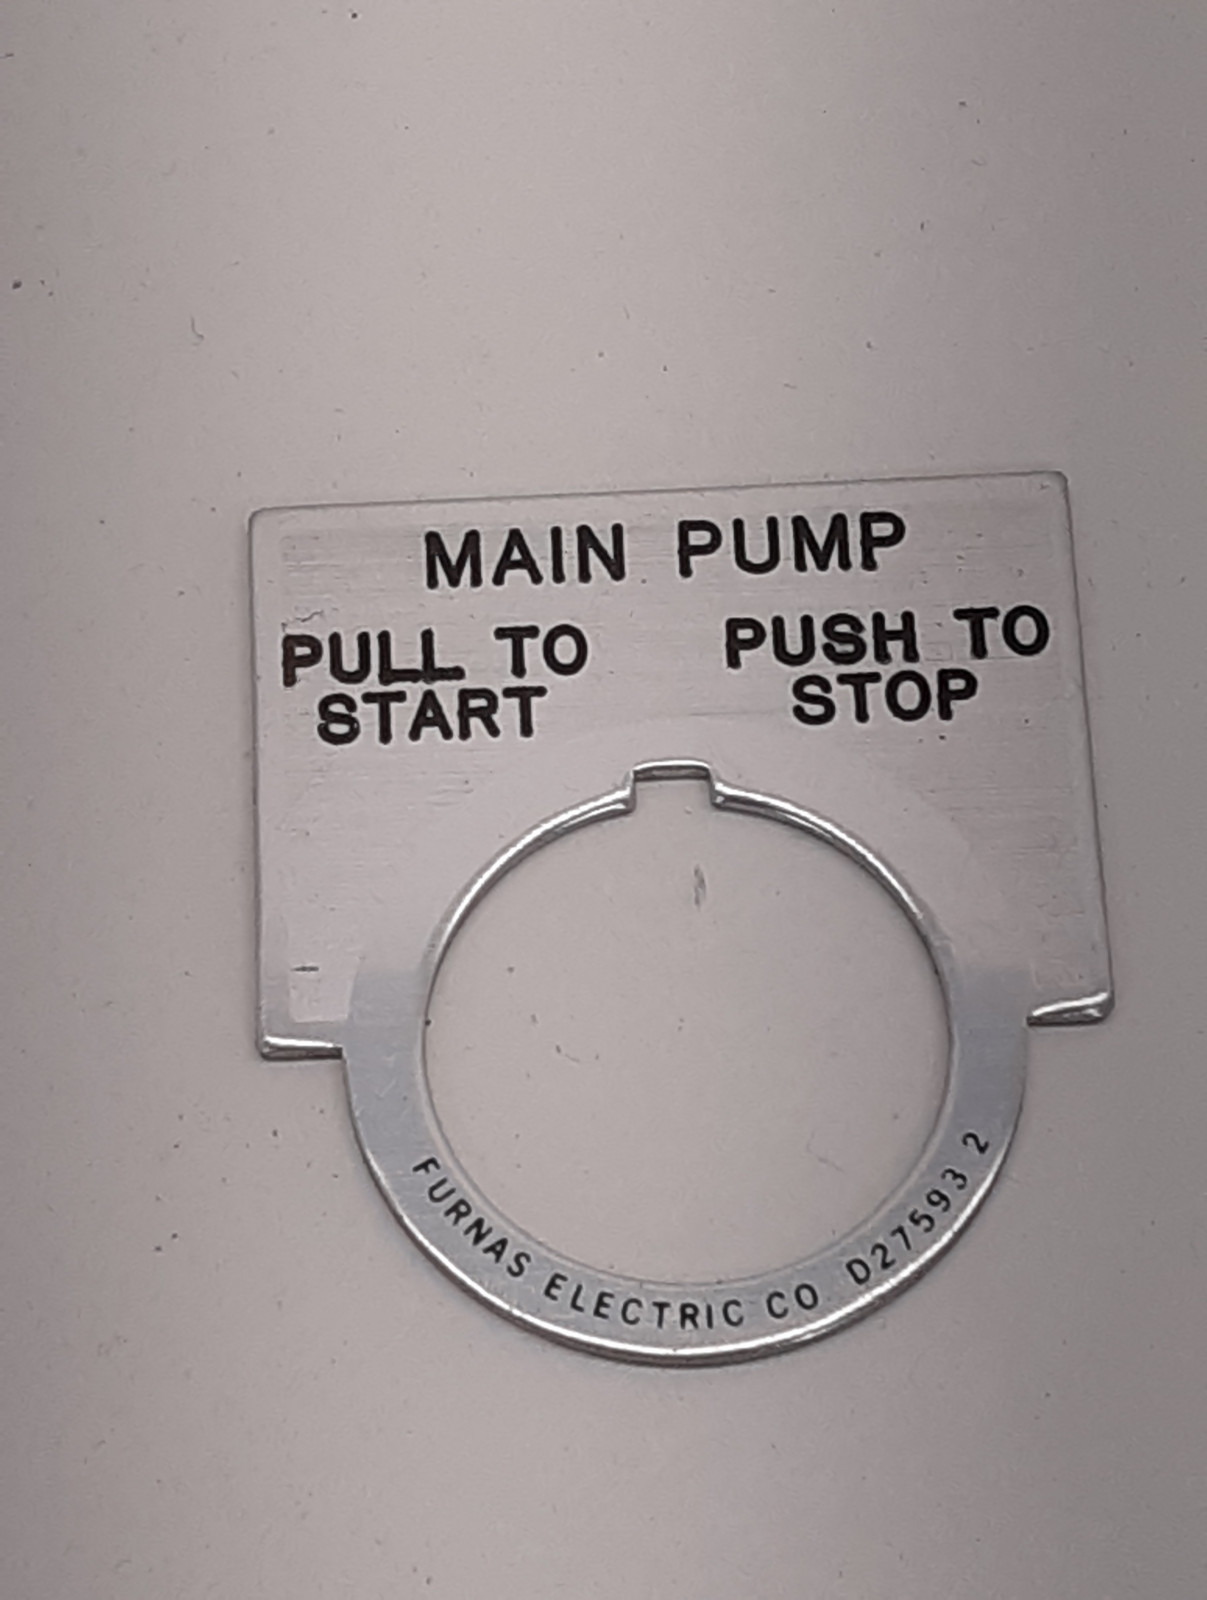 Furnas Electric Co. Main Pump D27593-2 Pull To Start / Push To Stop 30mm